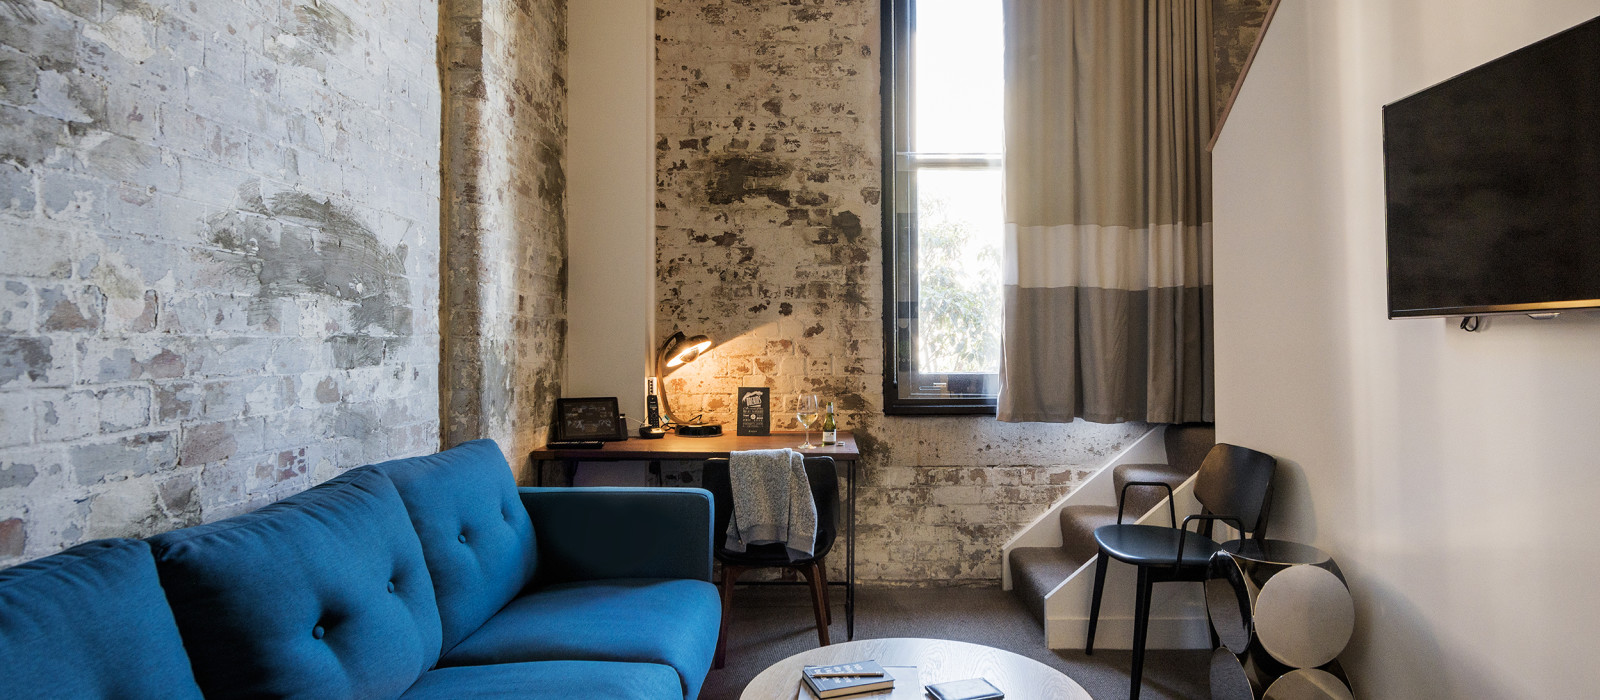 Hotel Ovolo 1888 Darling Harbour Australien